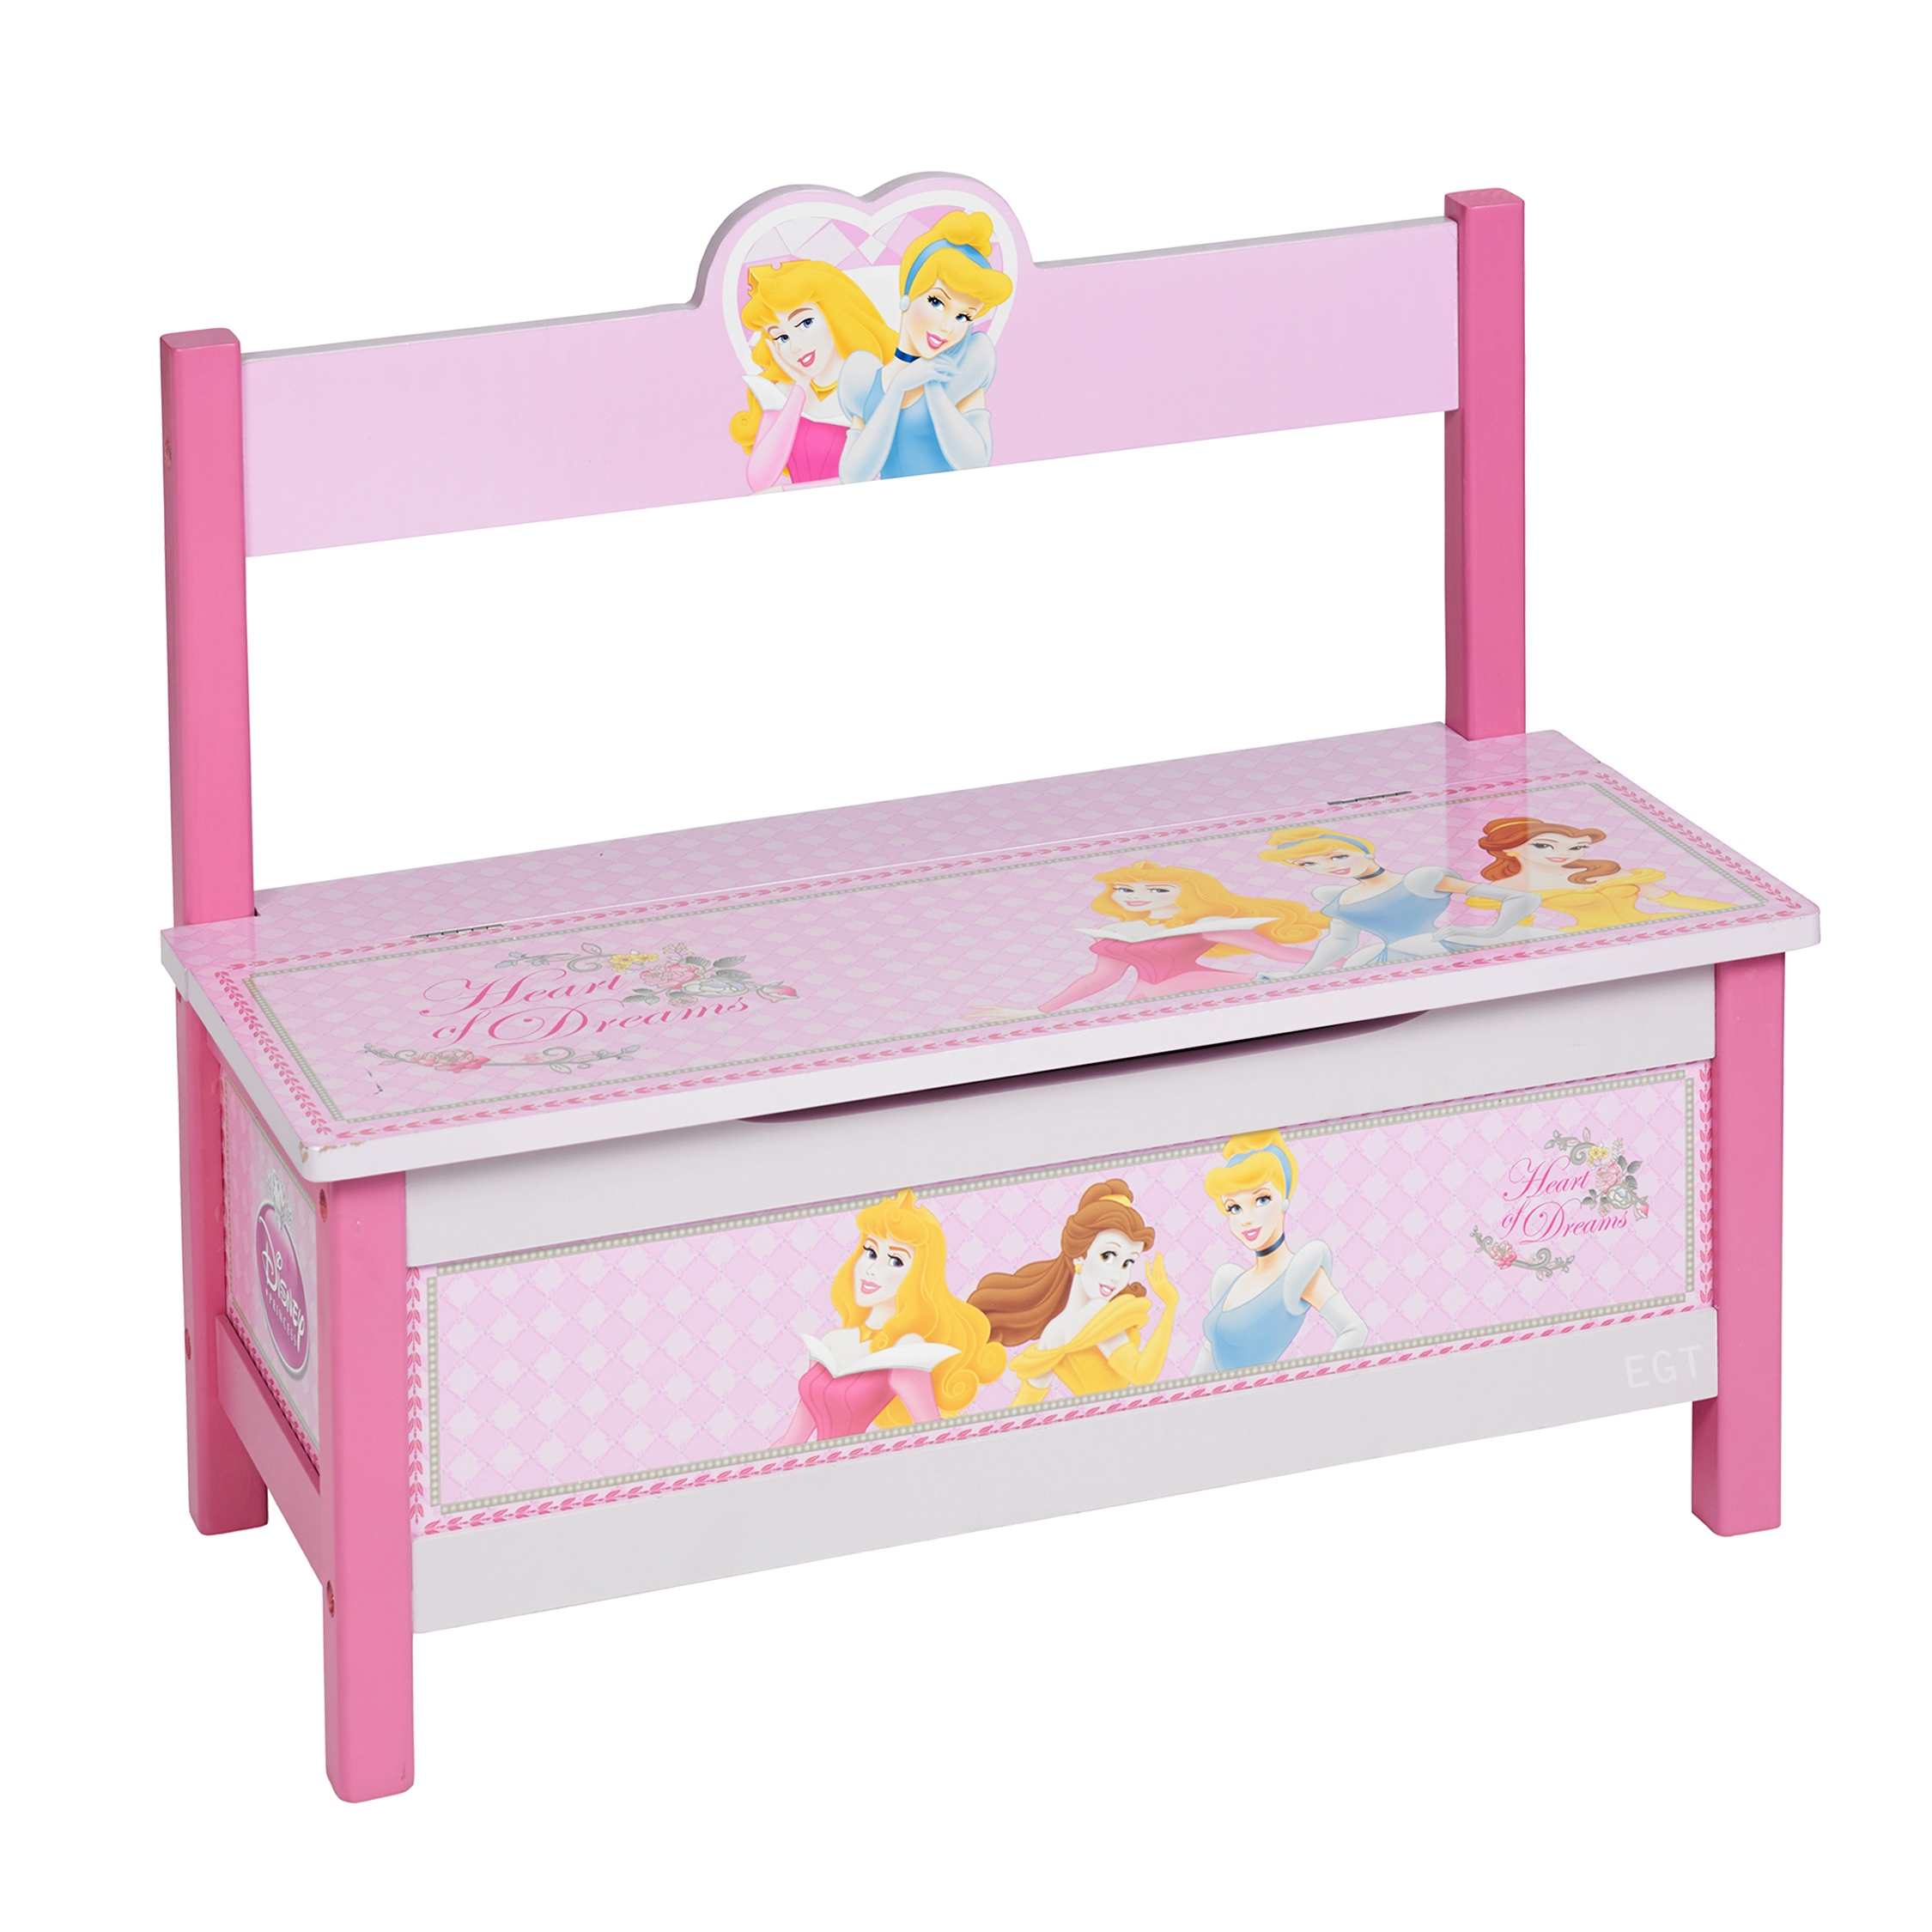 ... Princess Wooden MDF 2 in 1 Toy Storage Chest Box Bench Seat Ottoman